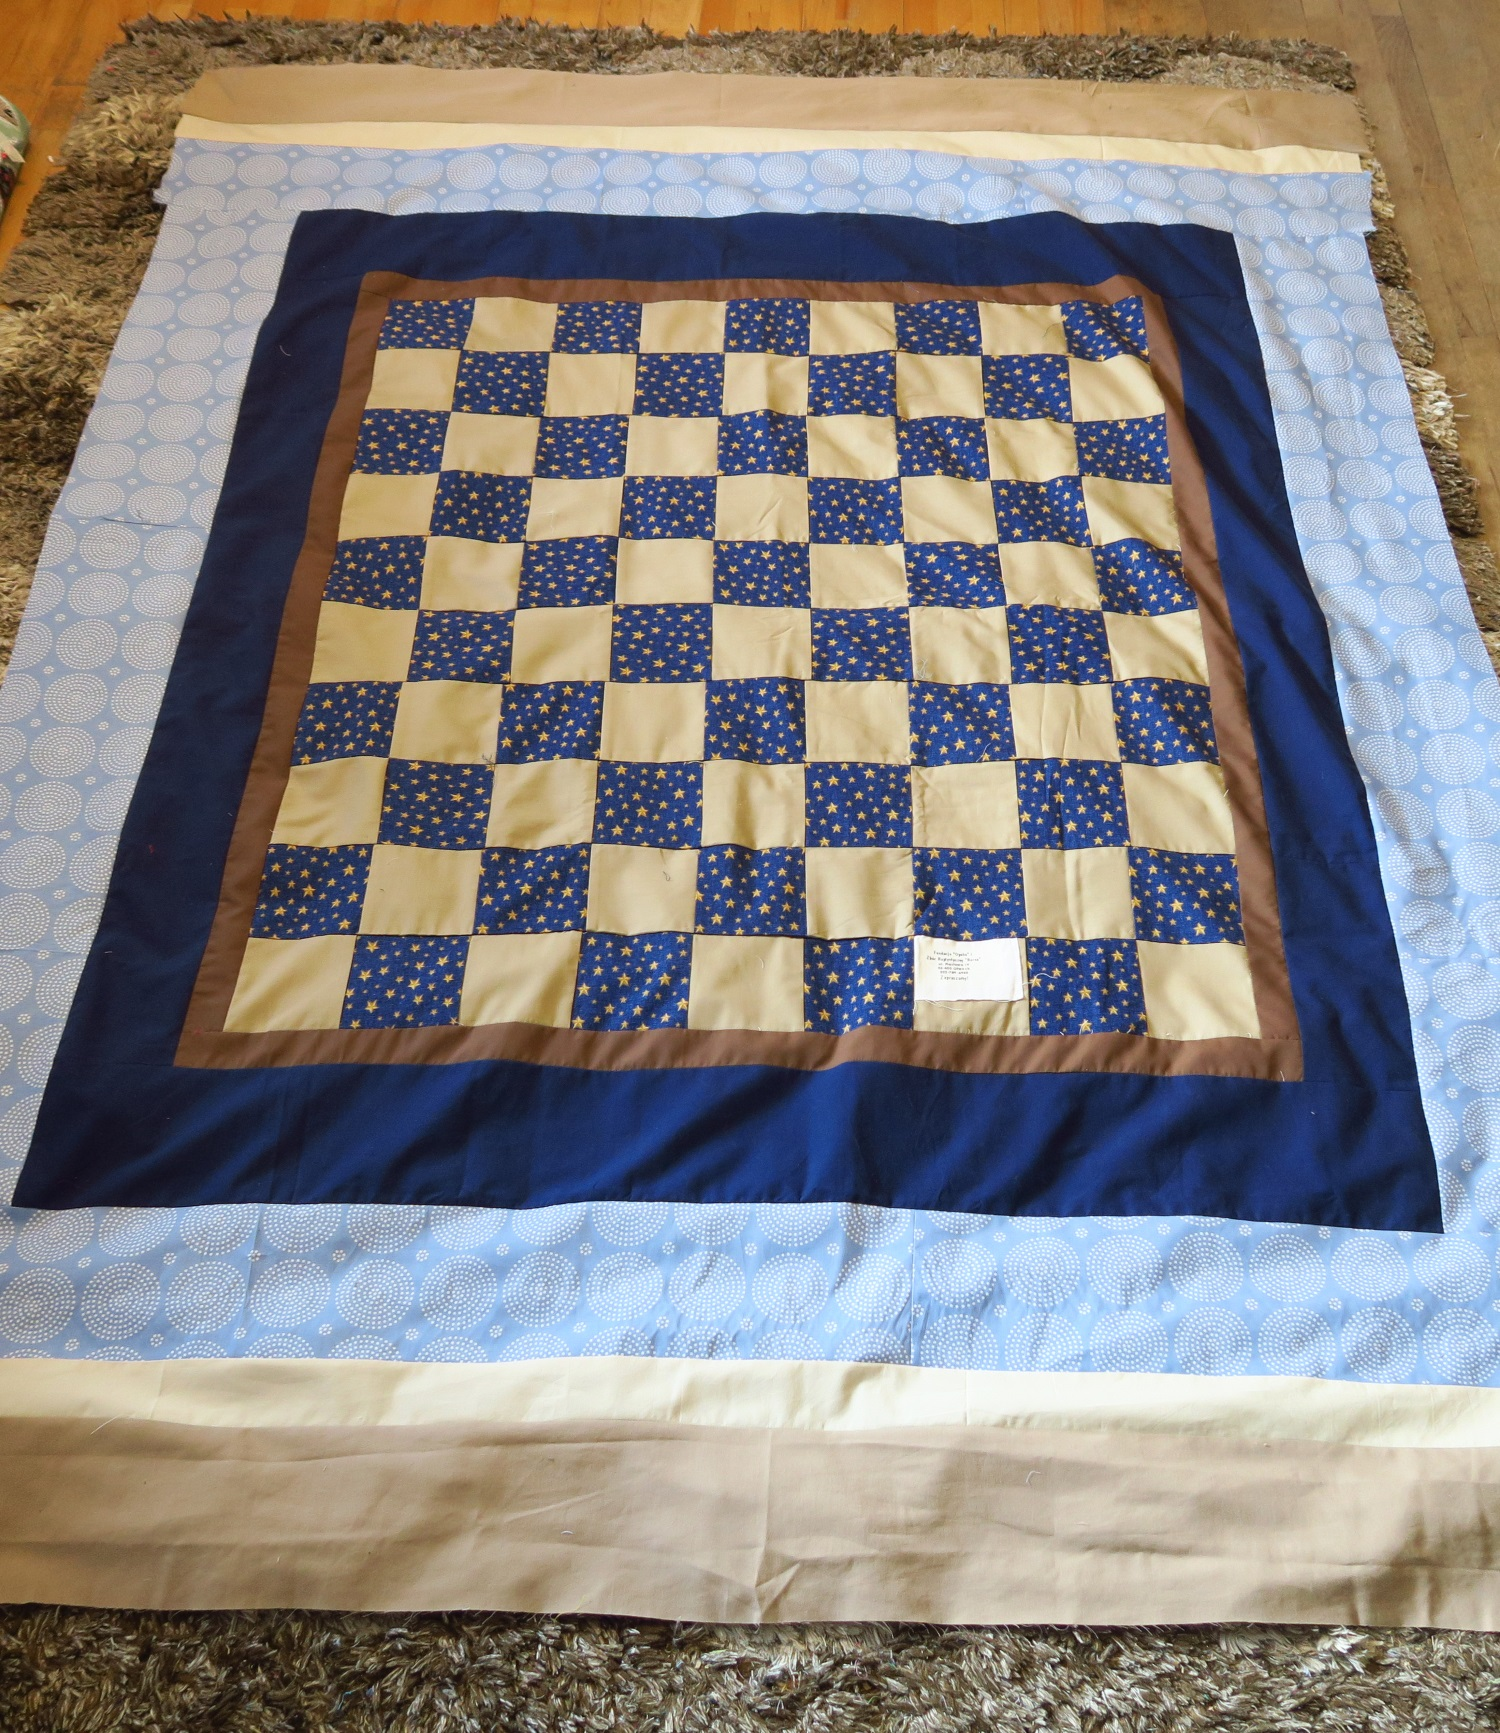 Here's the n avy blue and tan one shown above with the borders added. I didn't use her muslin backing as one of the borders. I'll save it and use it for something else.